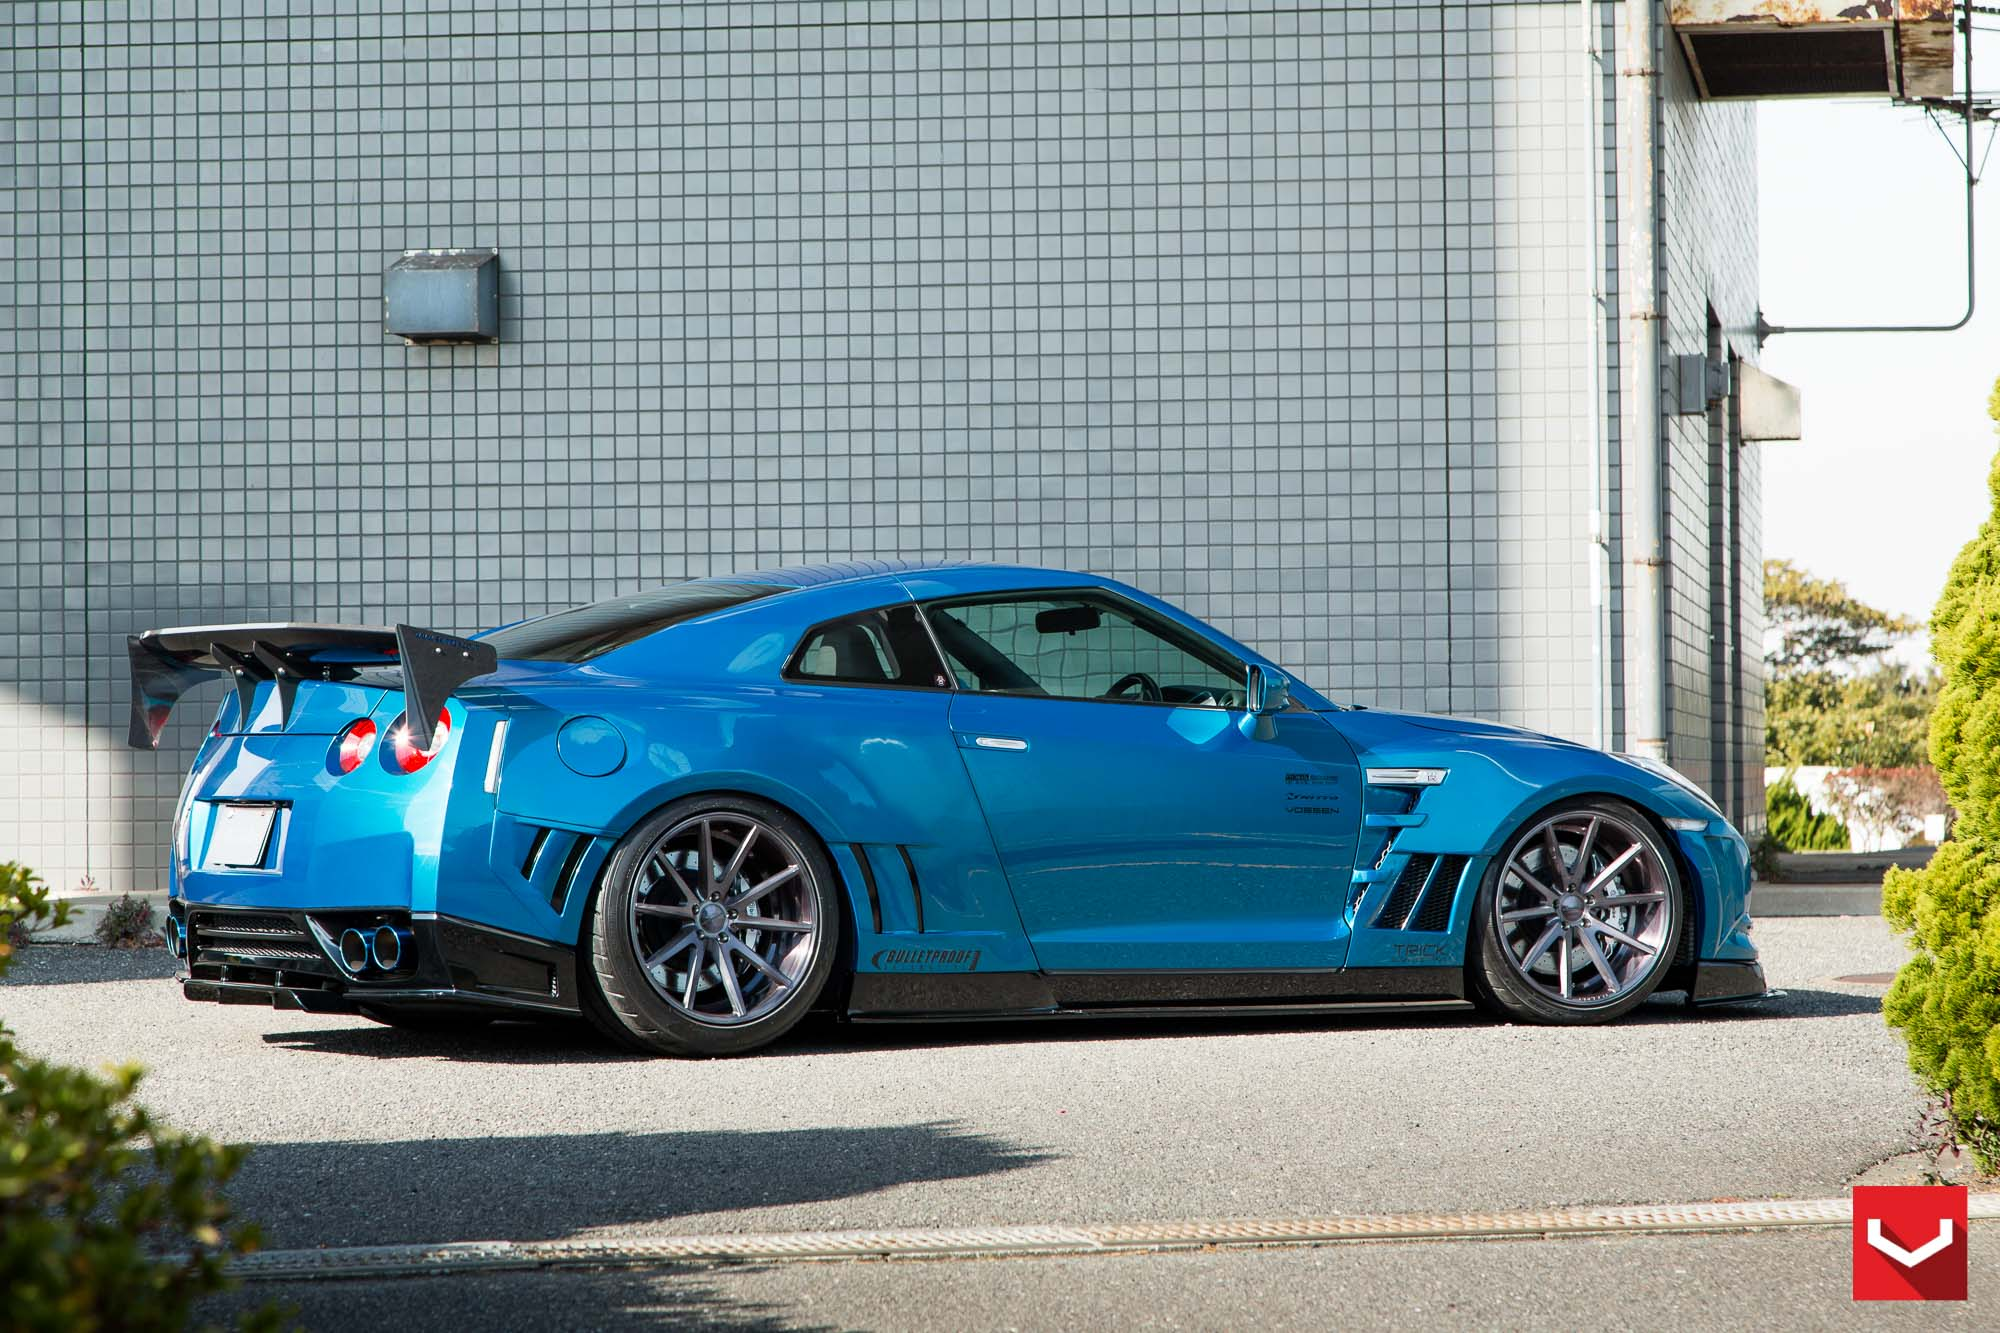 Skipper Tuning Nissan Gt R Excellent Aero Effects Vossen Wheels  ... : Skipper Tuning Nissan GT-R: Excellent Aero Effects, Vossen Wheels